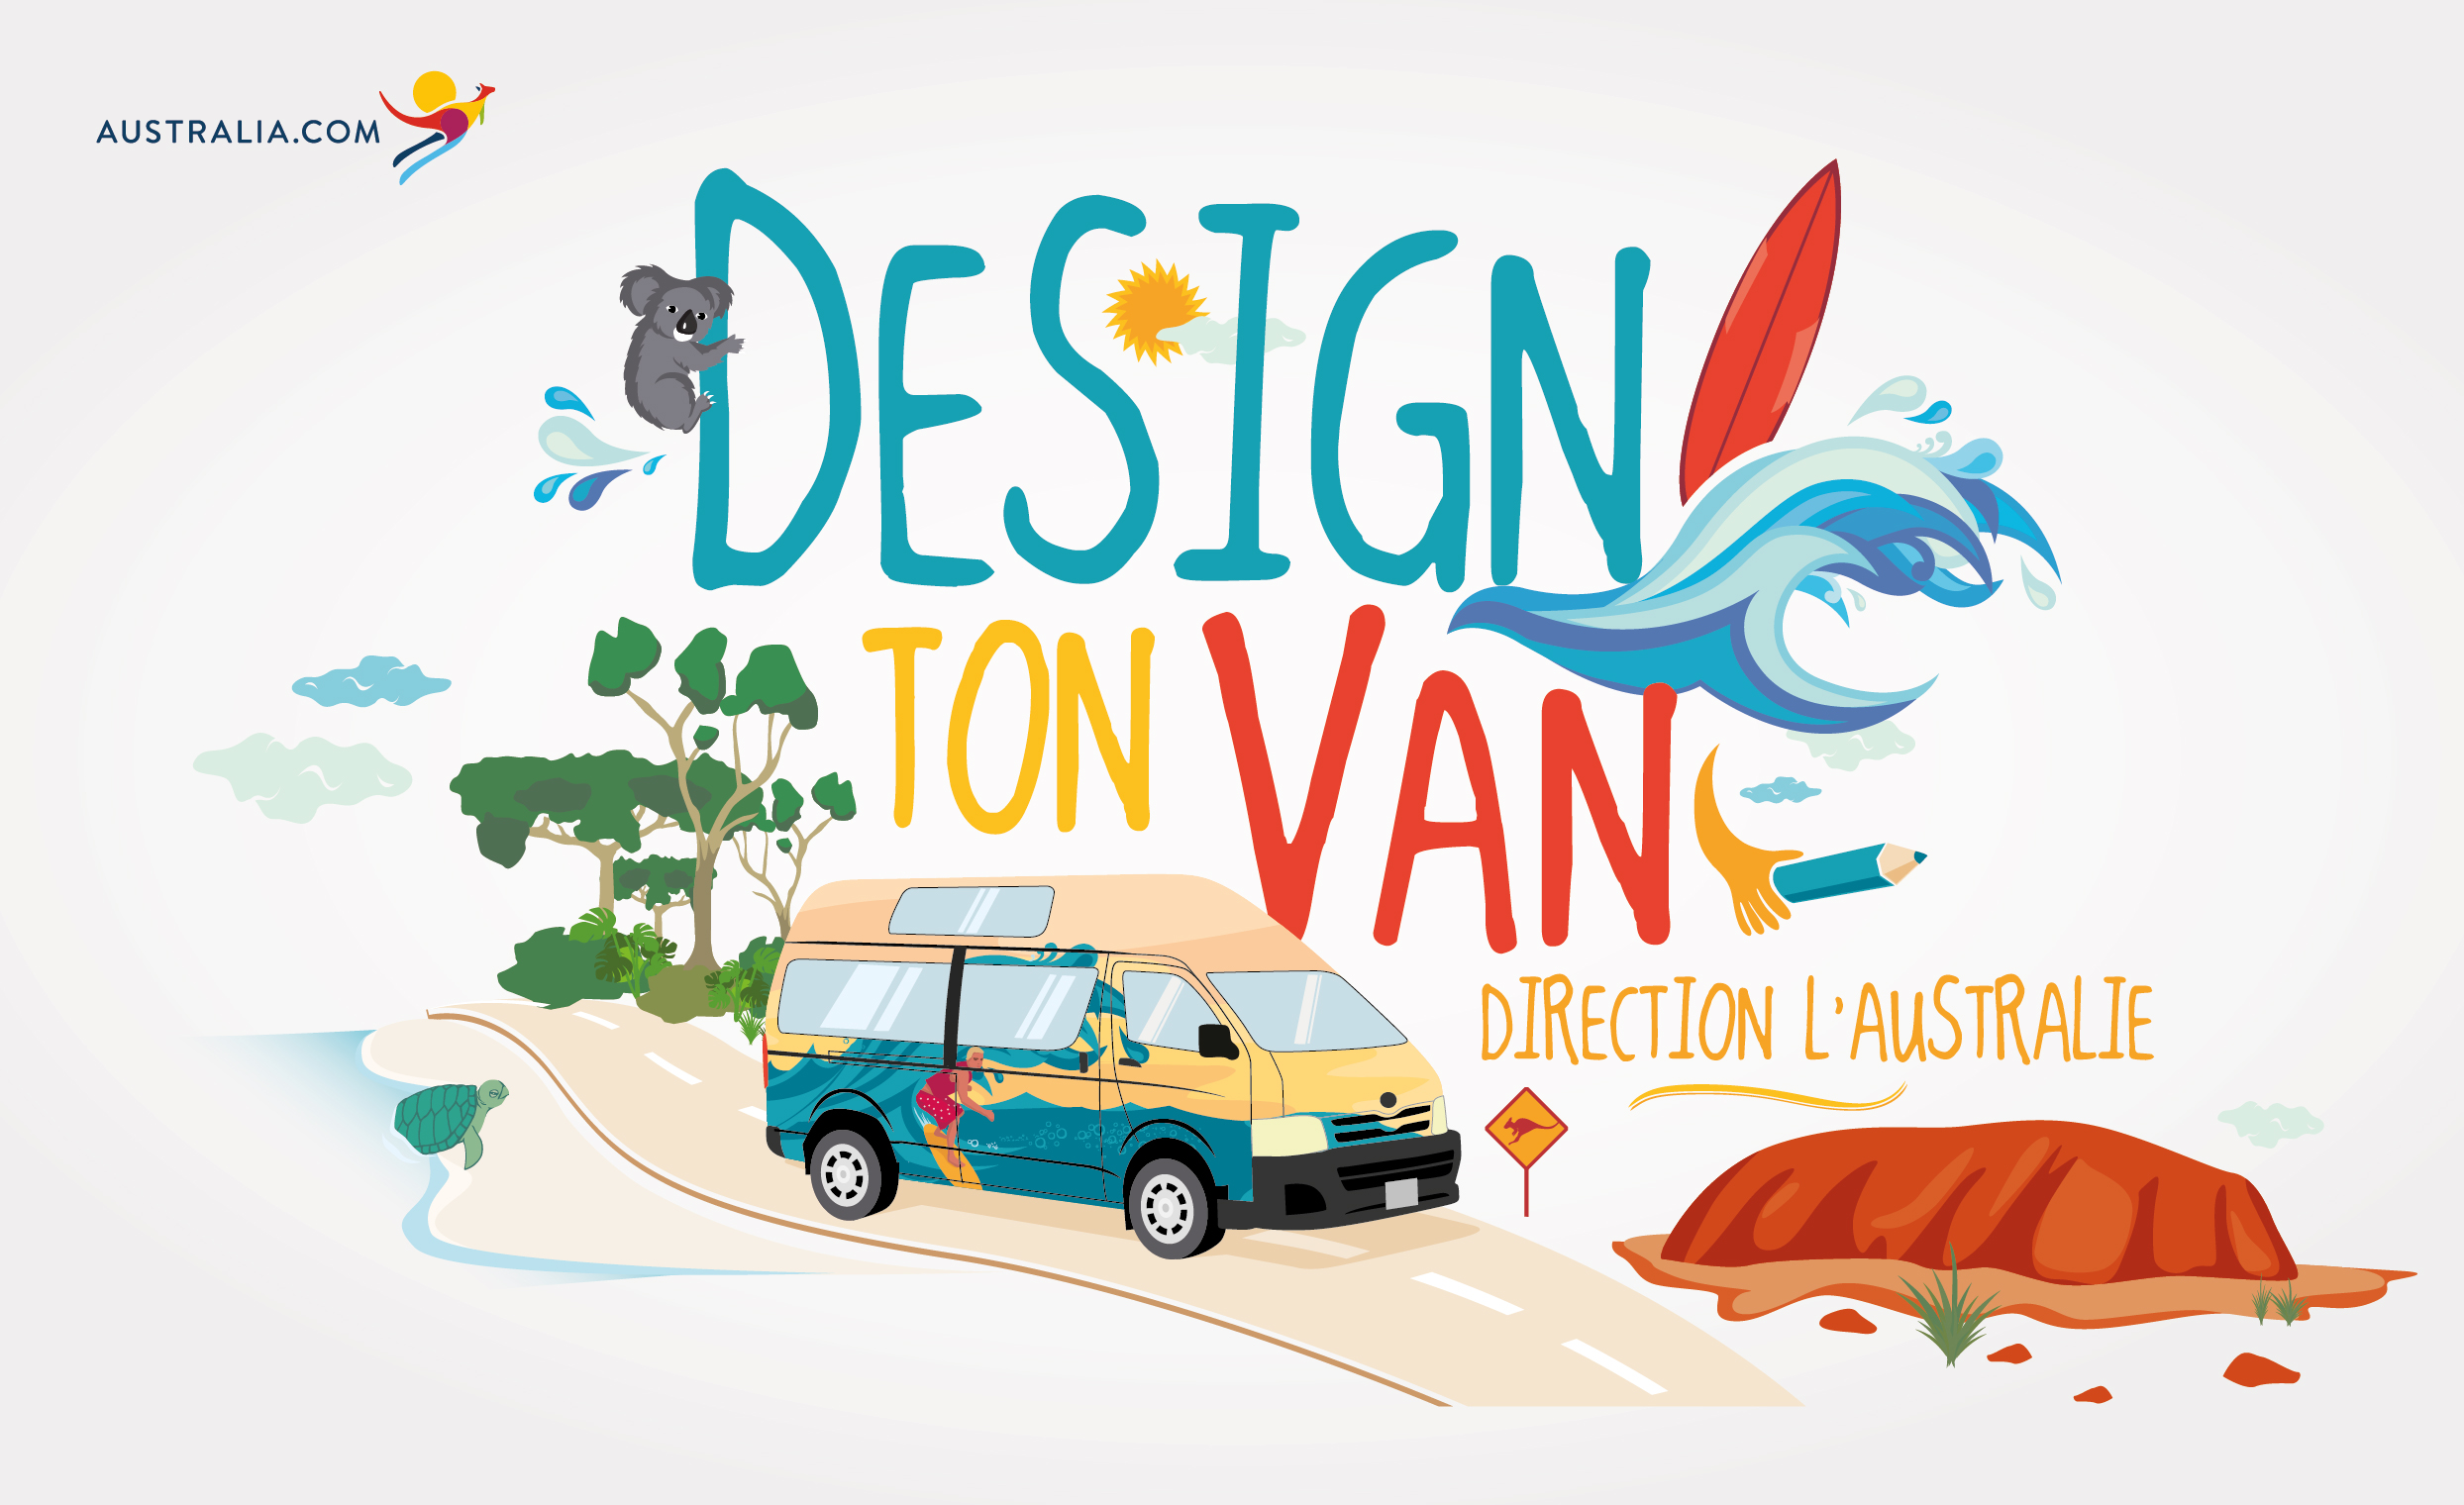 Design ton van direction l 39 australie - Office du tourisme australie ...